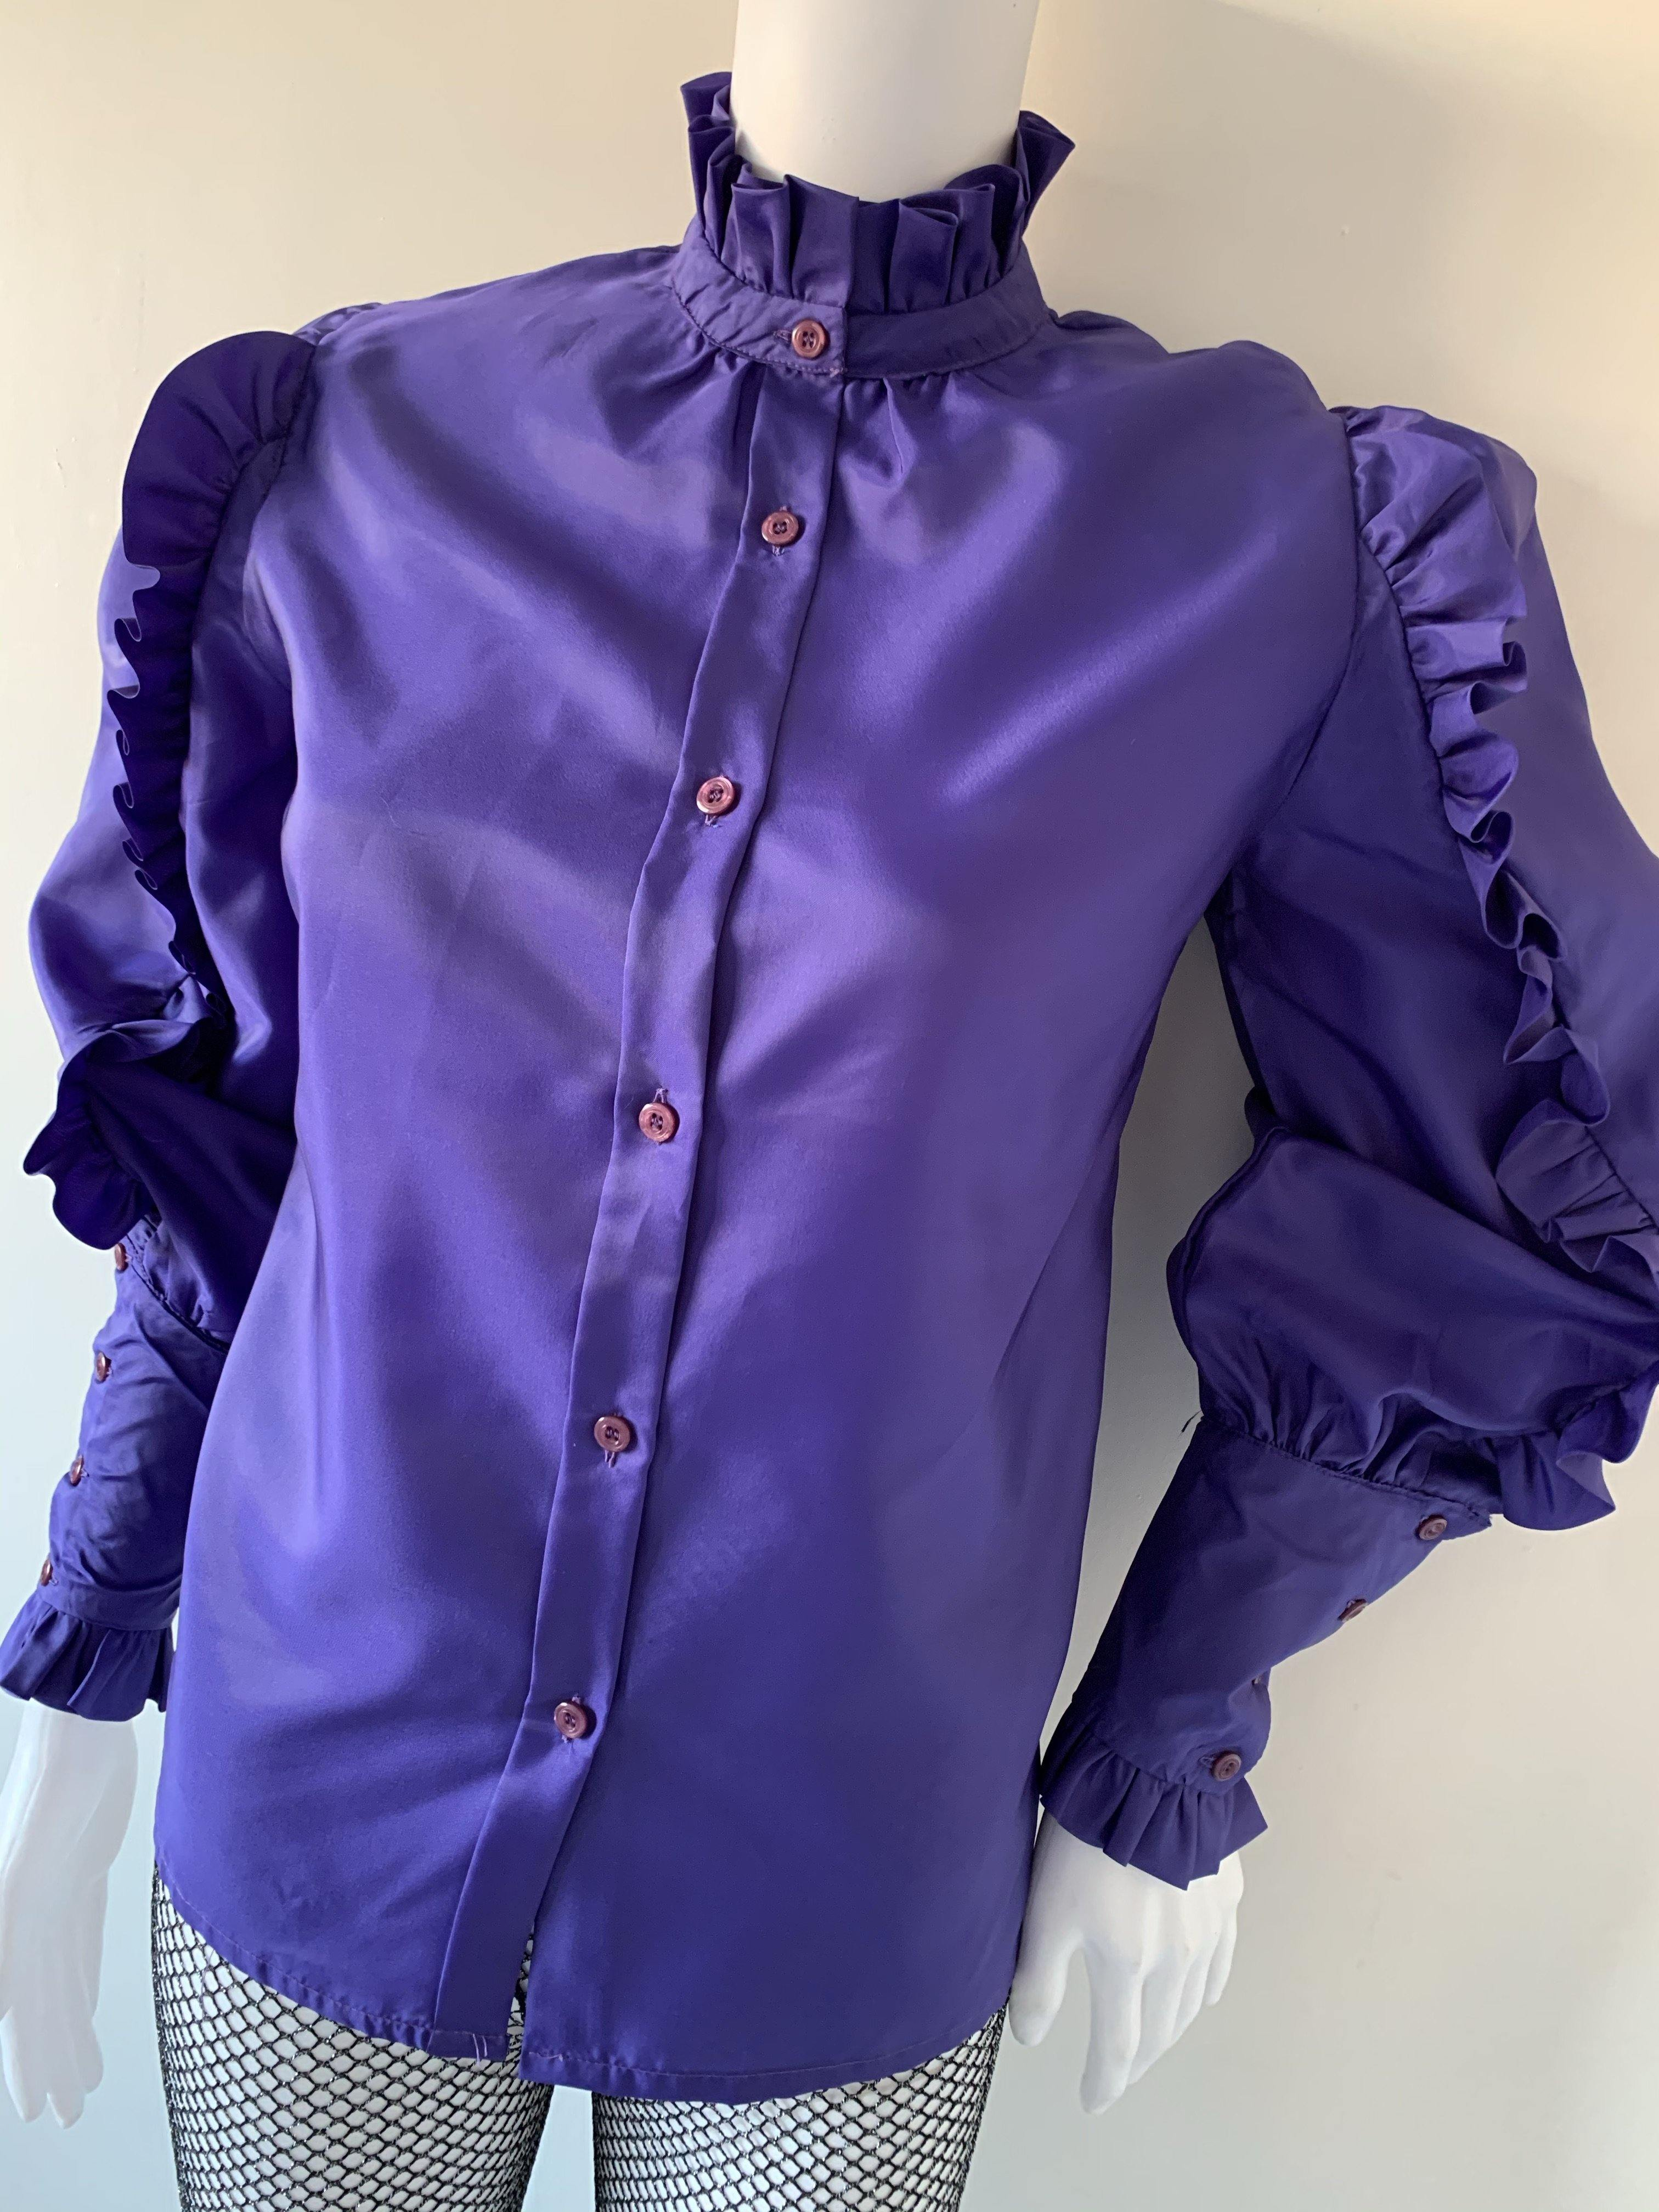 - ONE OF A KIND - Vintage 1970s Ruffle Victoriana Trim Blouse - Overdress Vintage